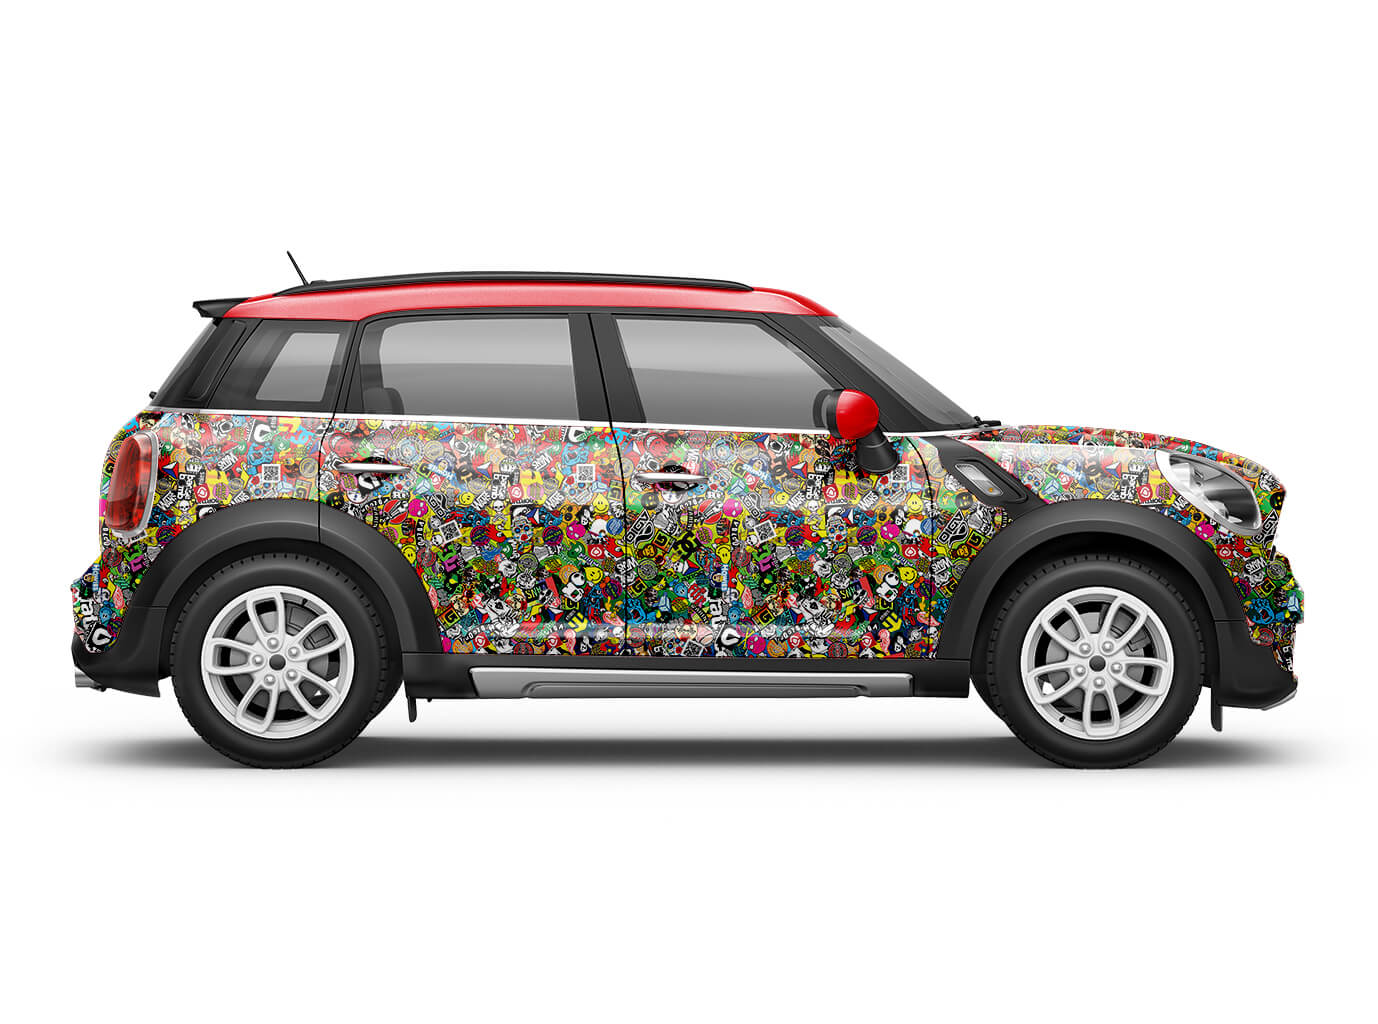 JDM Autofolie Sticker Bomb  3D Car wrapping Blasenfrei Skate Stickerbomb Folie